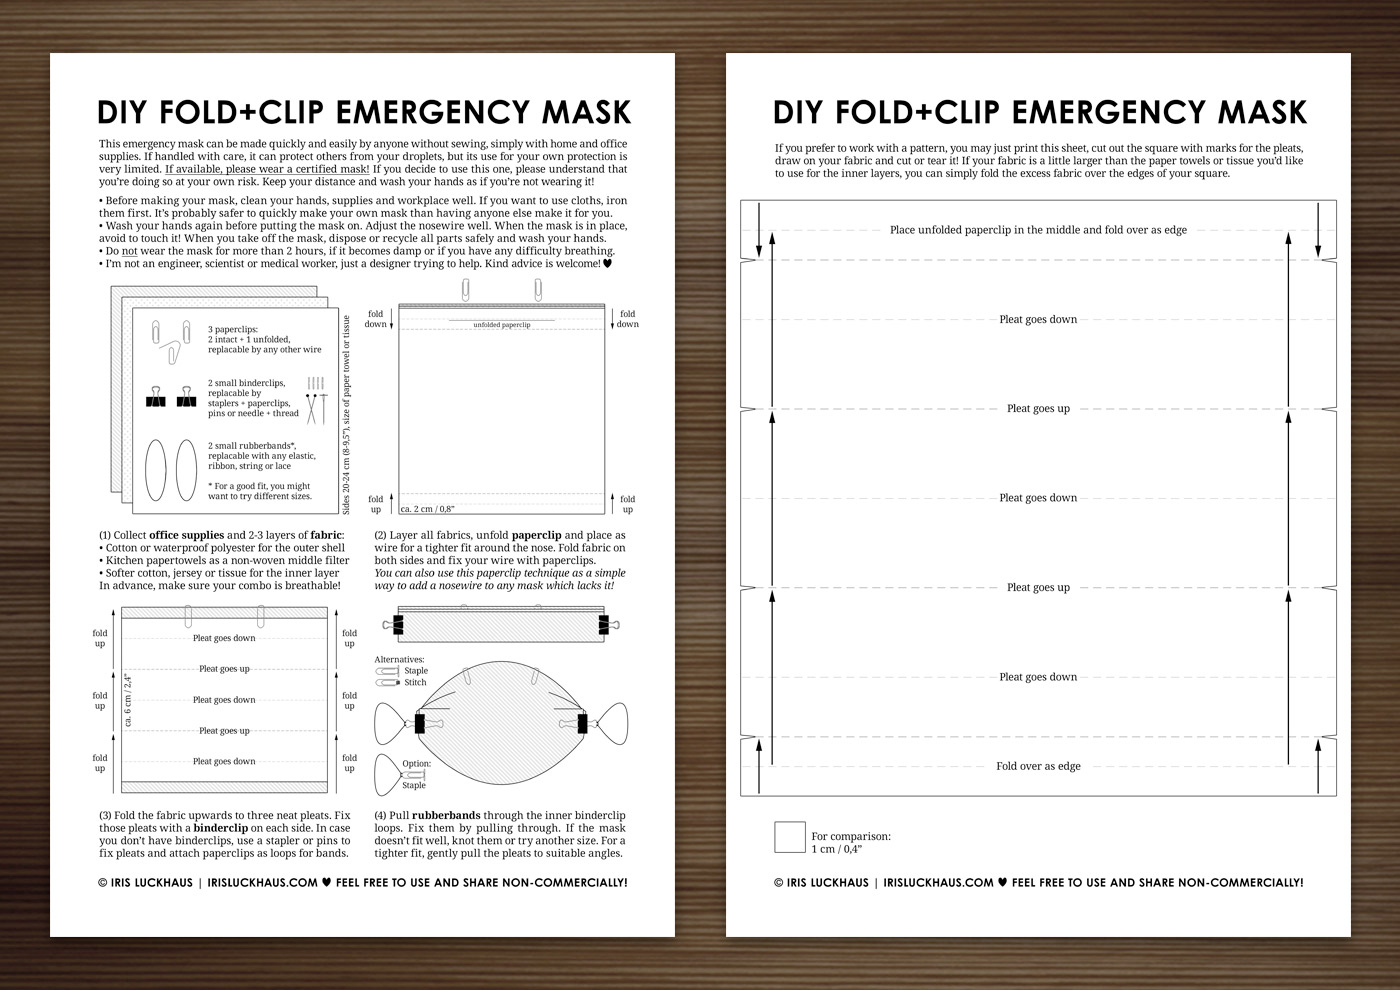 DIY Fold+Clip Emergency Mask